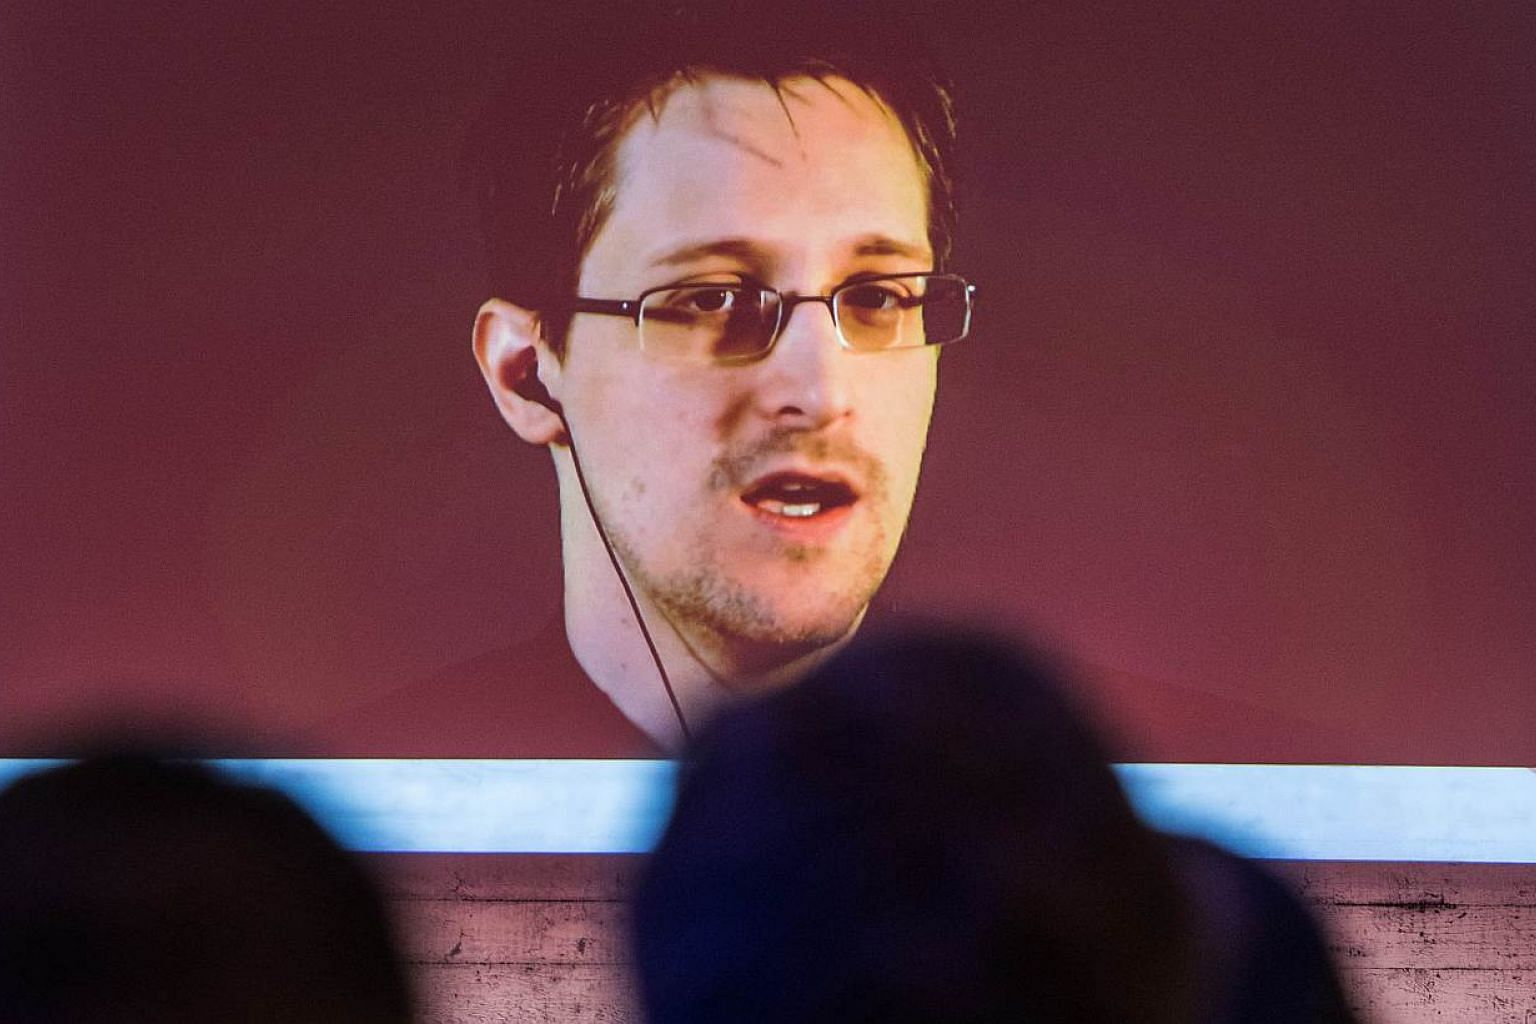 """US National Security Agency (NSA) whistleblower Edward Snowden speaks via live video call during the CeBIT technology fair in Hanover, central Germany, on March 18, 2015. Britain has pulled out agents from live operations in """"hostile countries"""" after"""